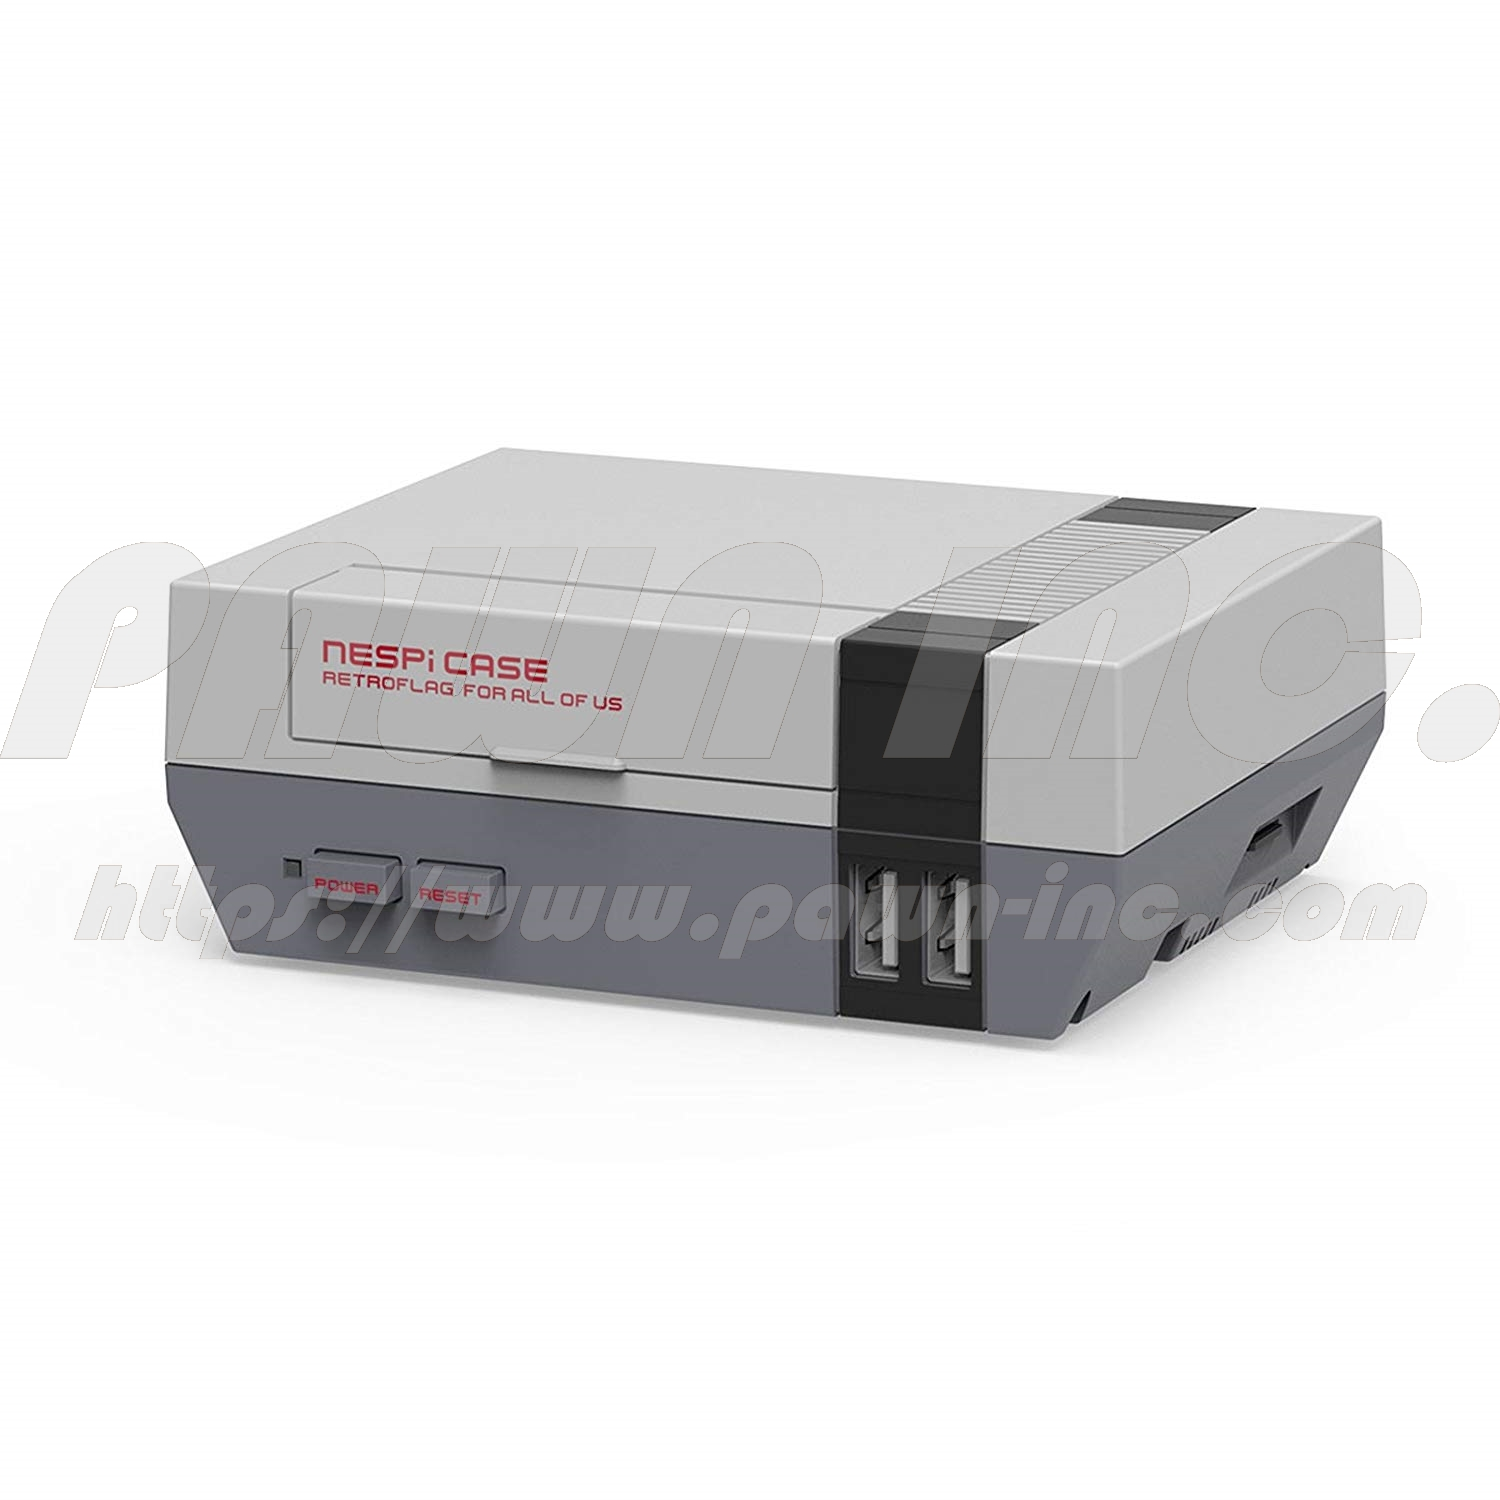 RETROFLAG NESPI CASE Mini NES Designed For Raspberry Pi 3, 2 and B+